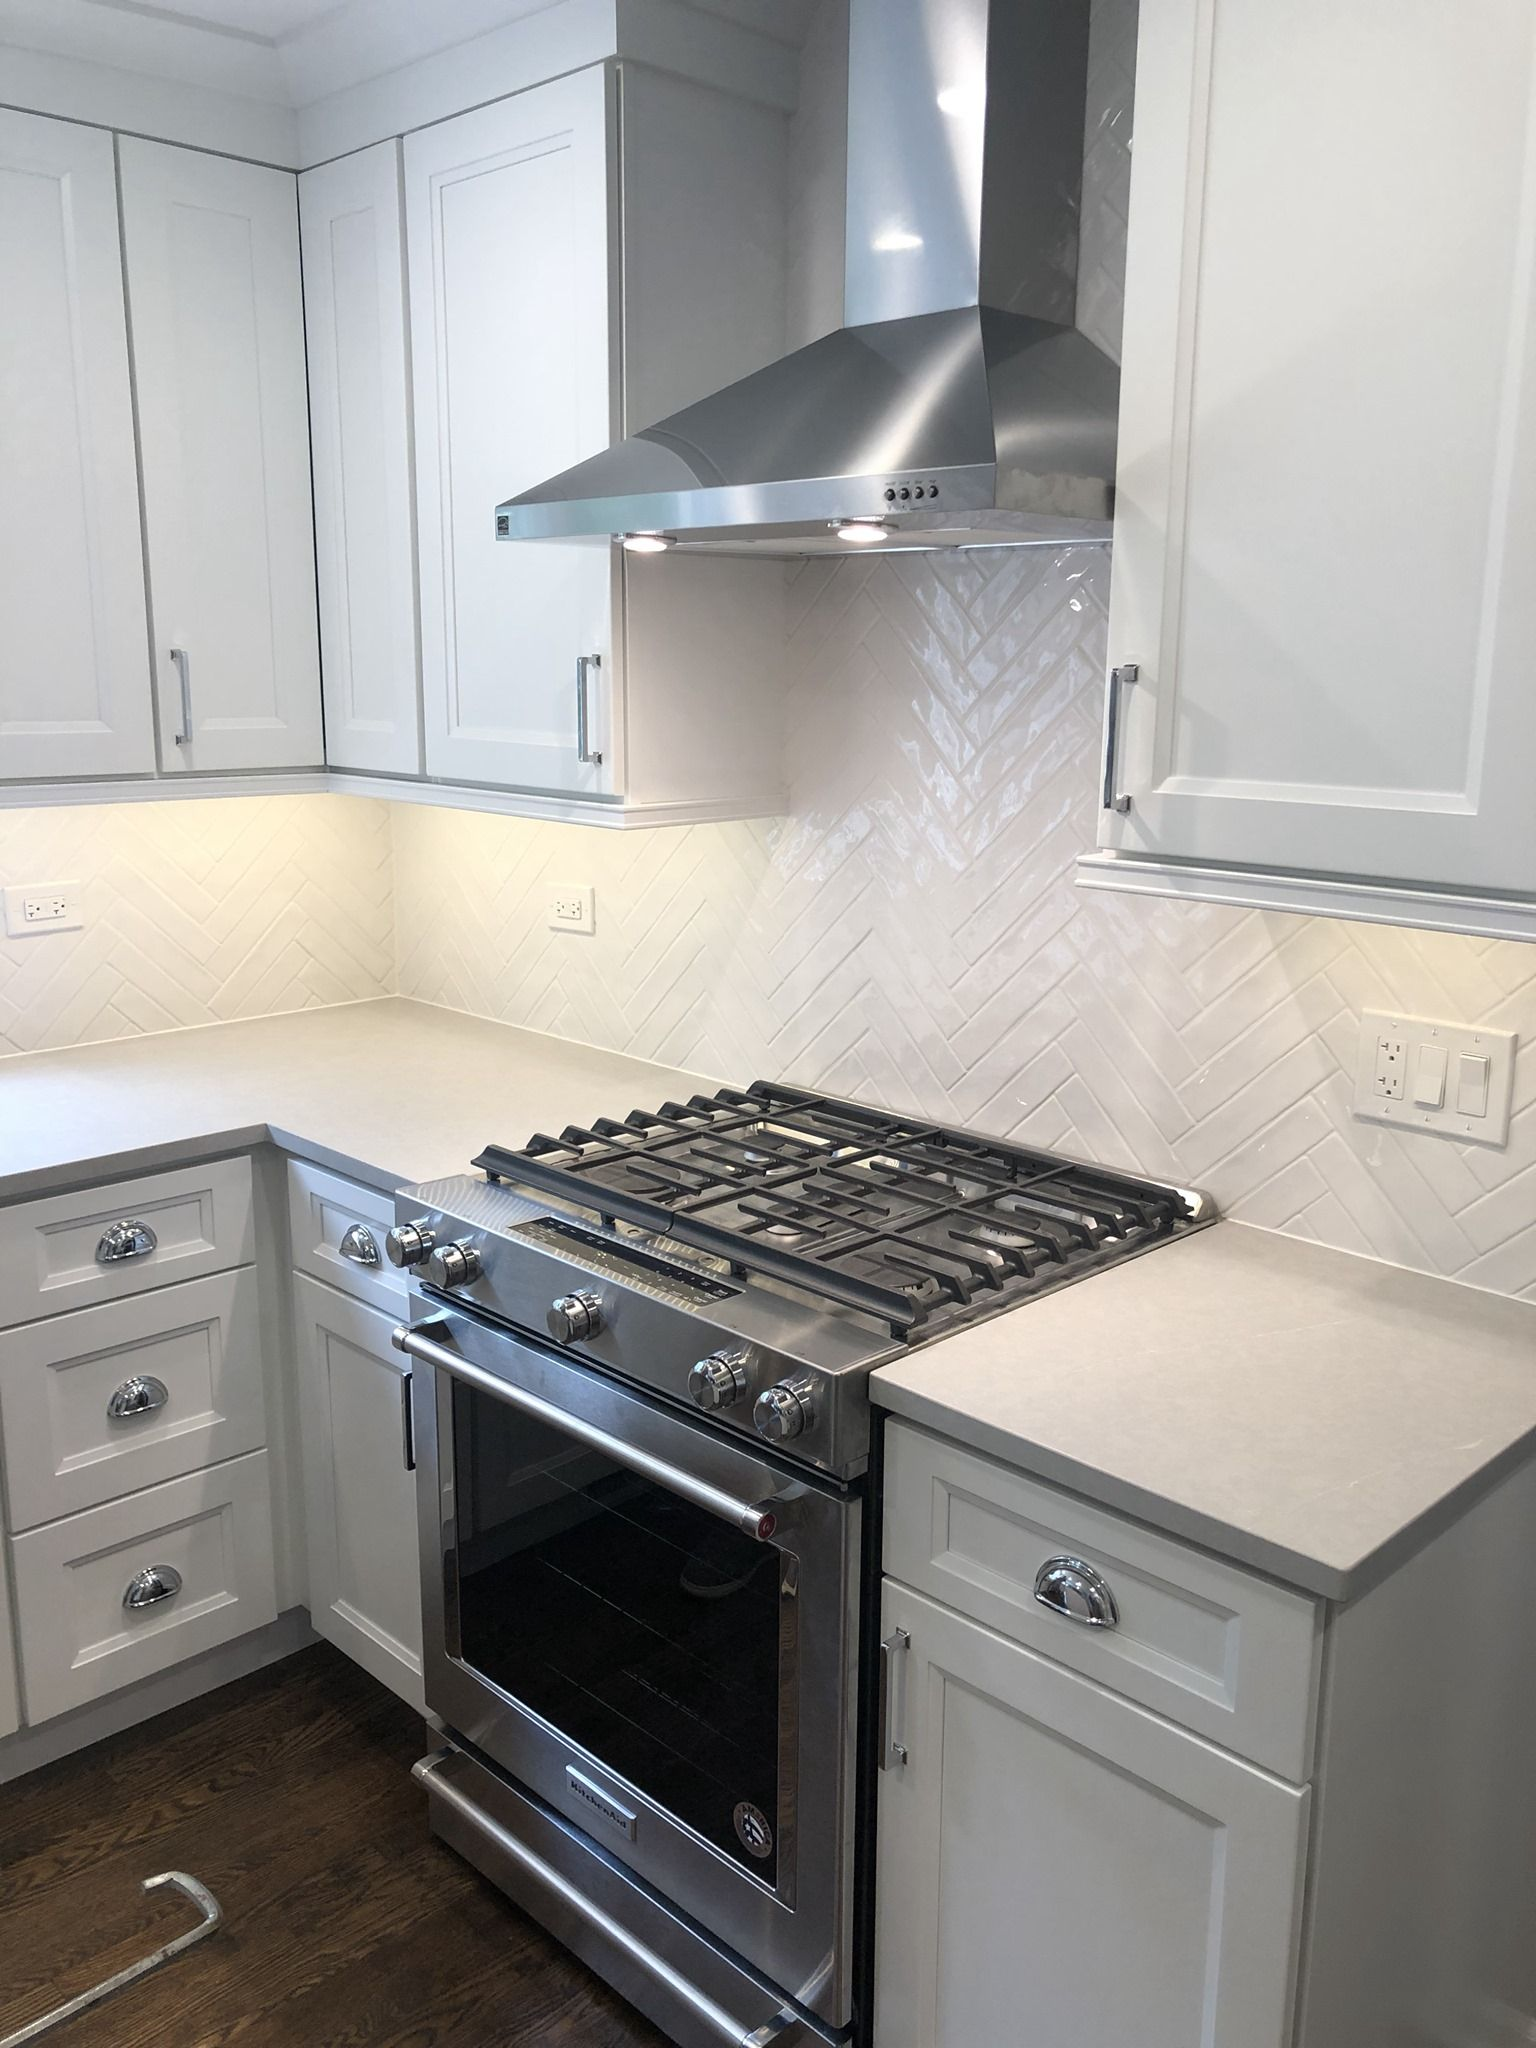 Lakeview, Chicago Crisp Clean Remodel! White shaker ...